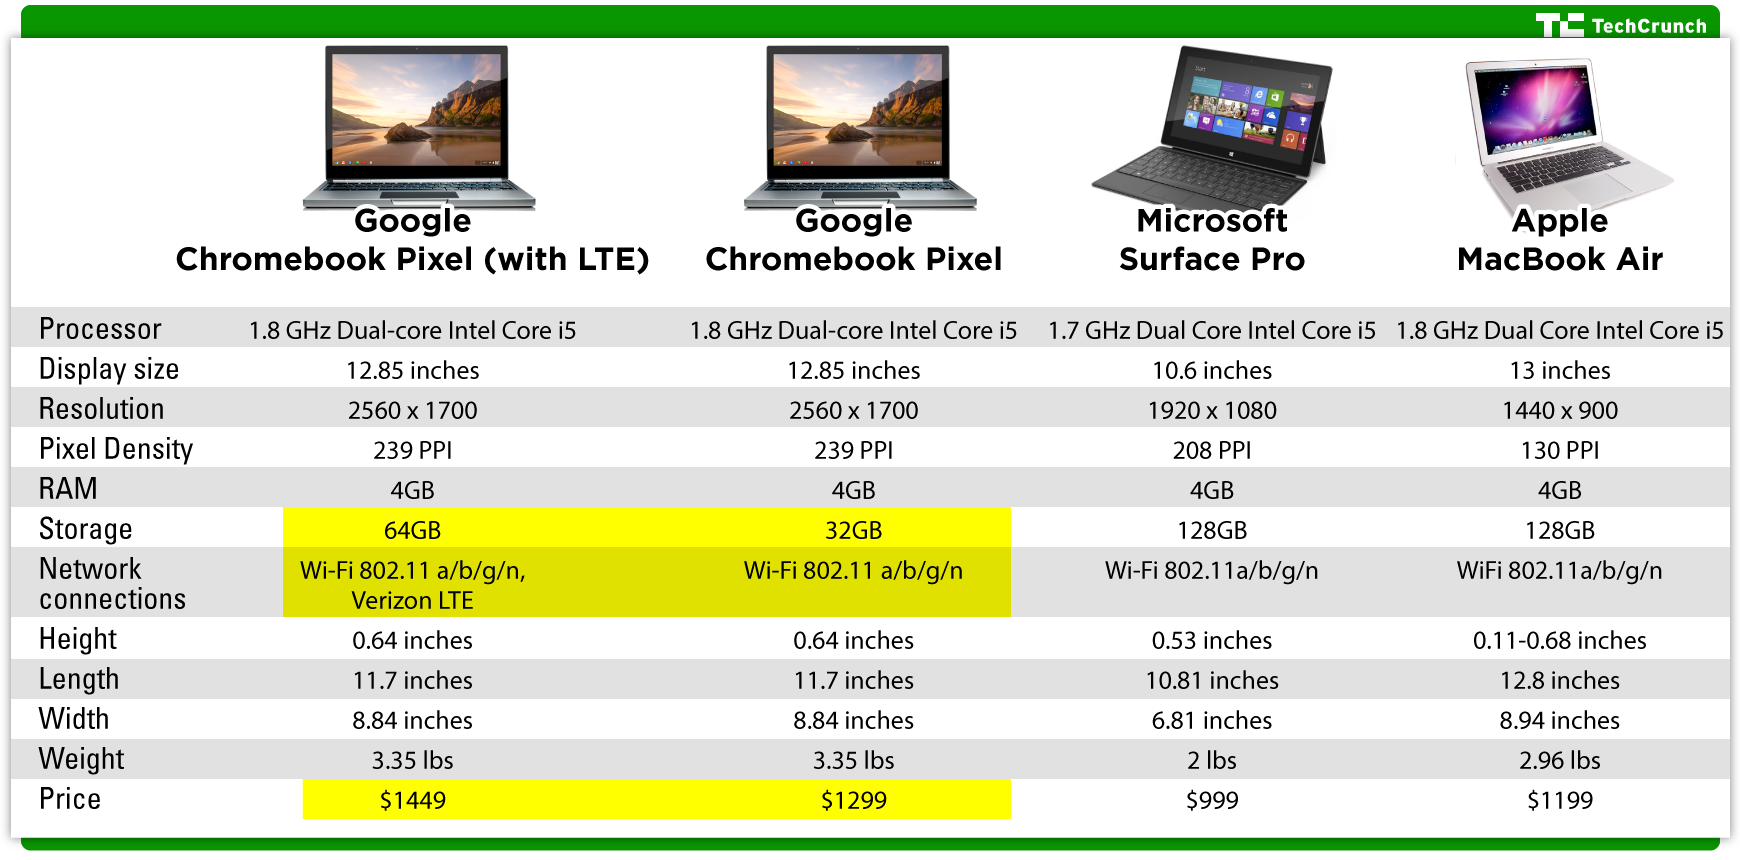 Google Chromebook Pixel comparison